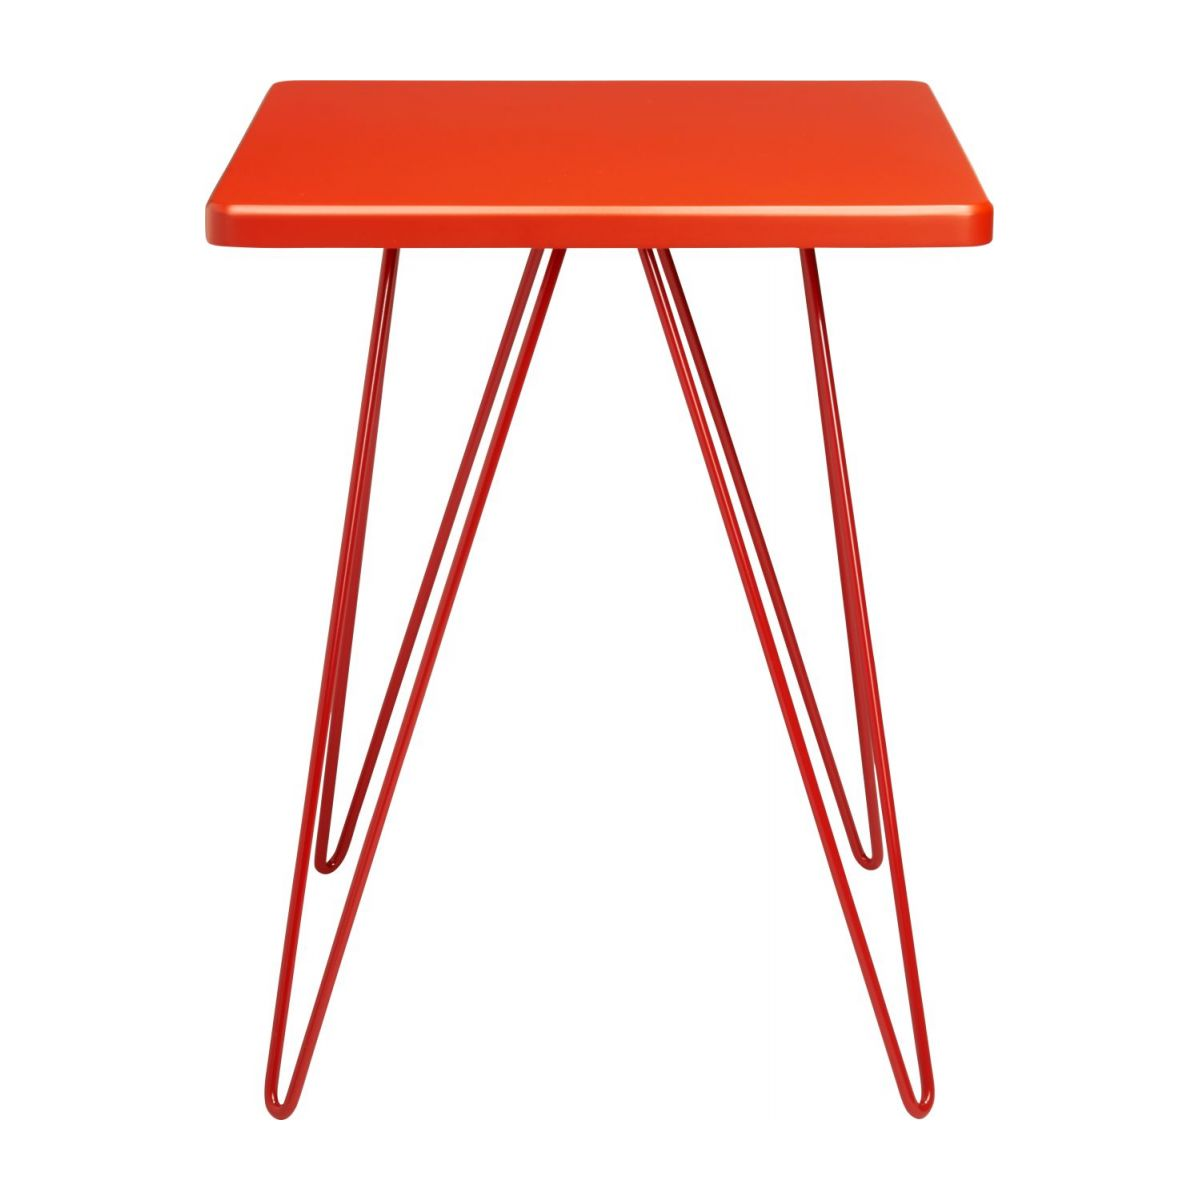 Table d'appoint rouge  n°2